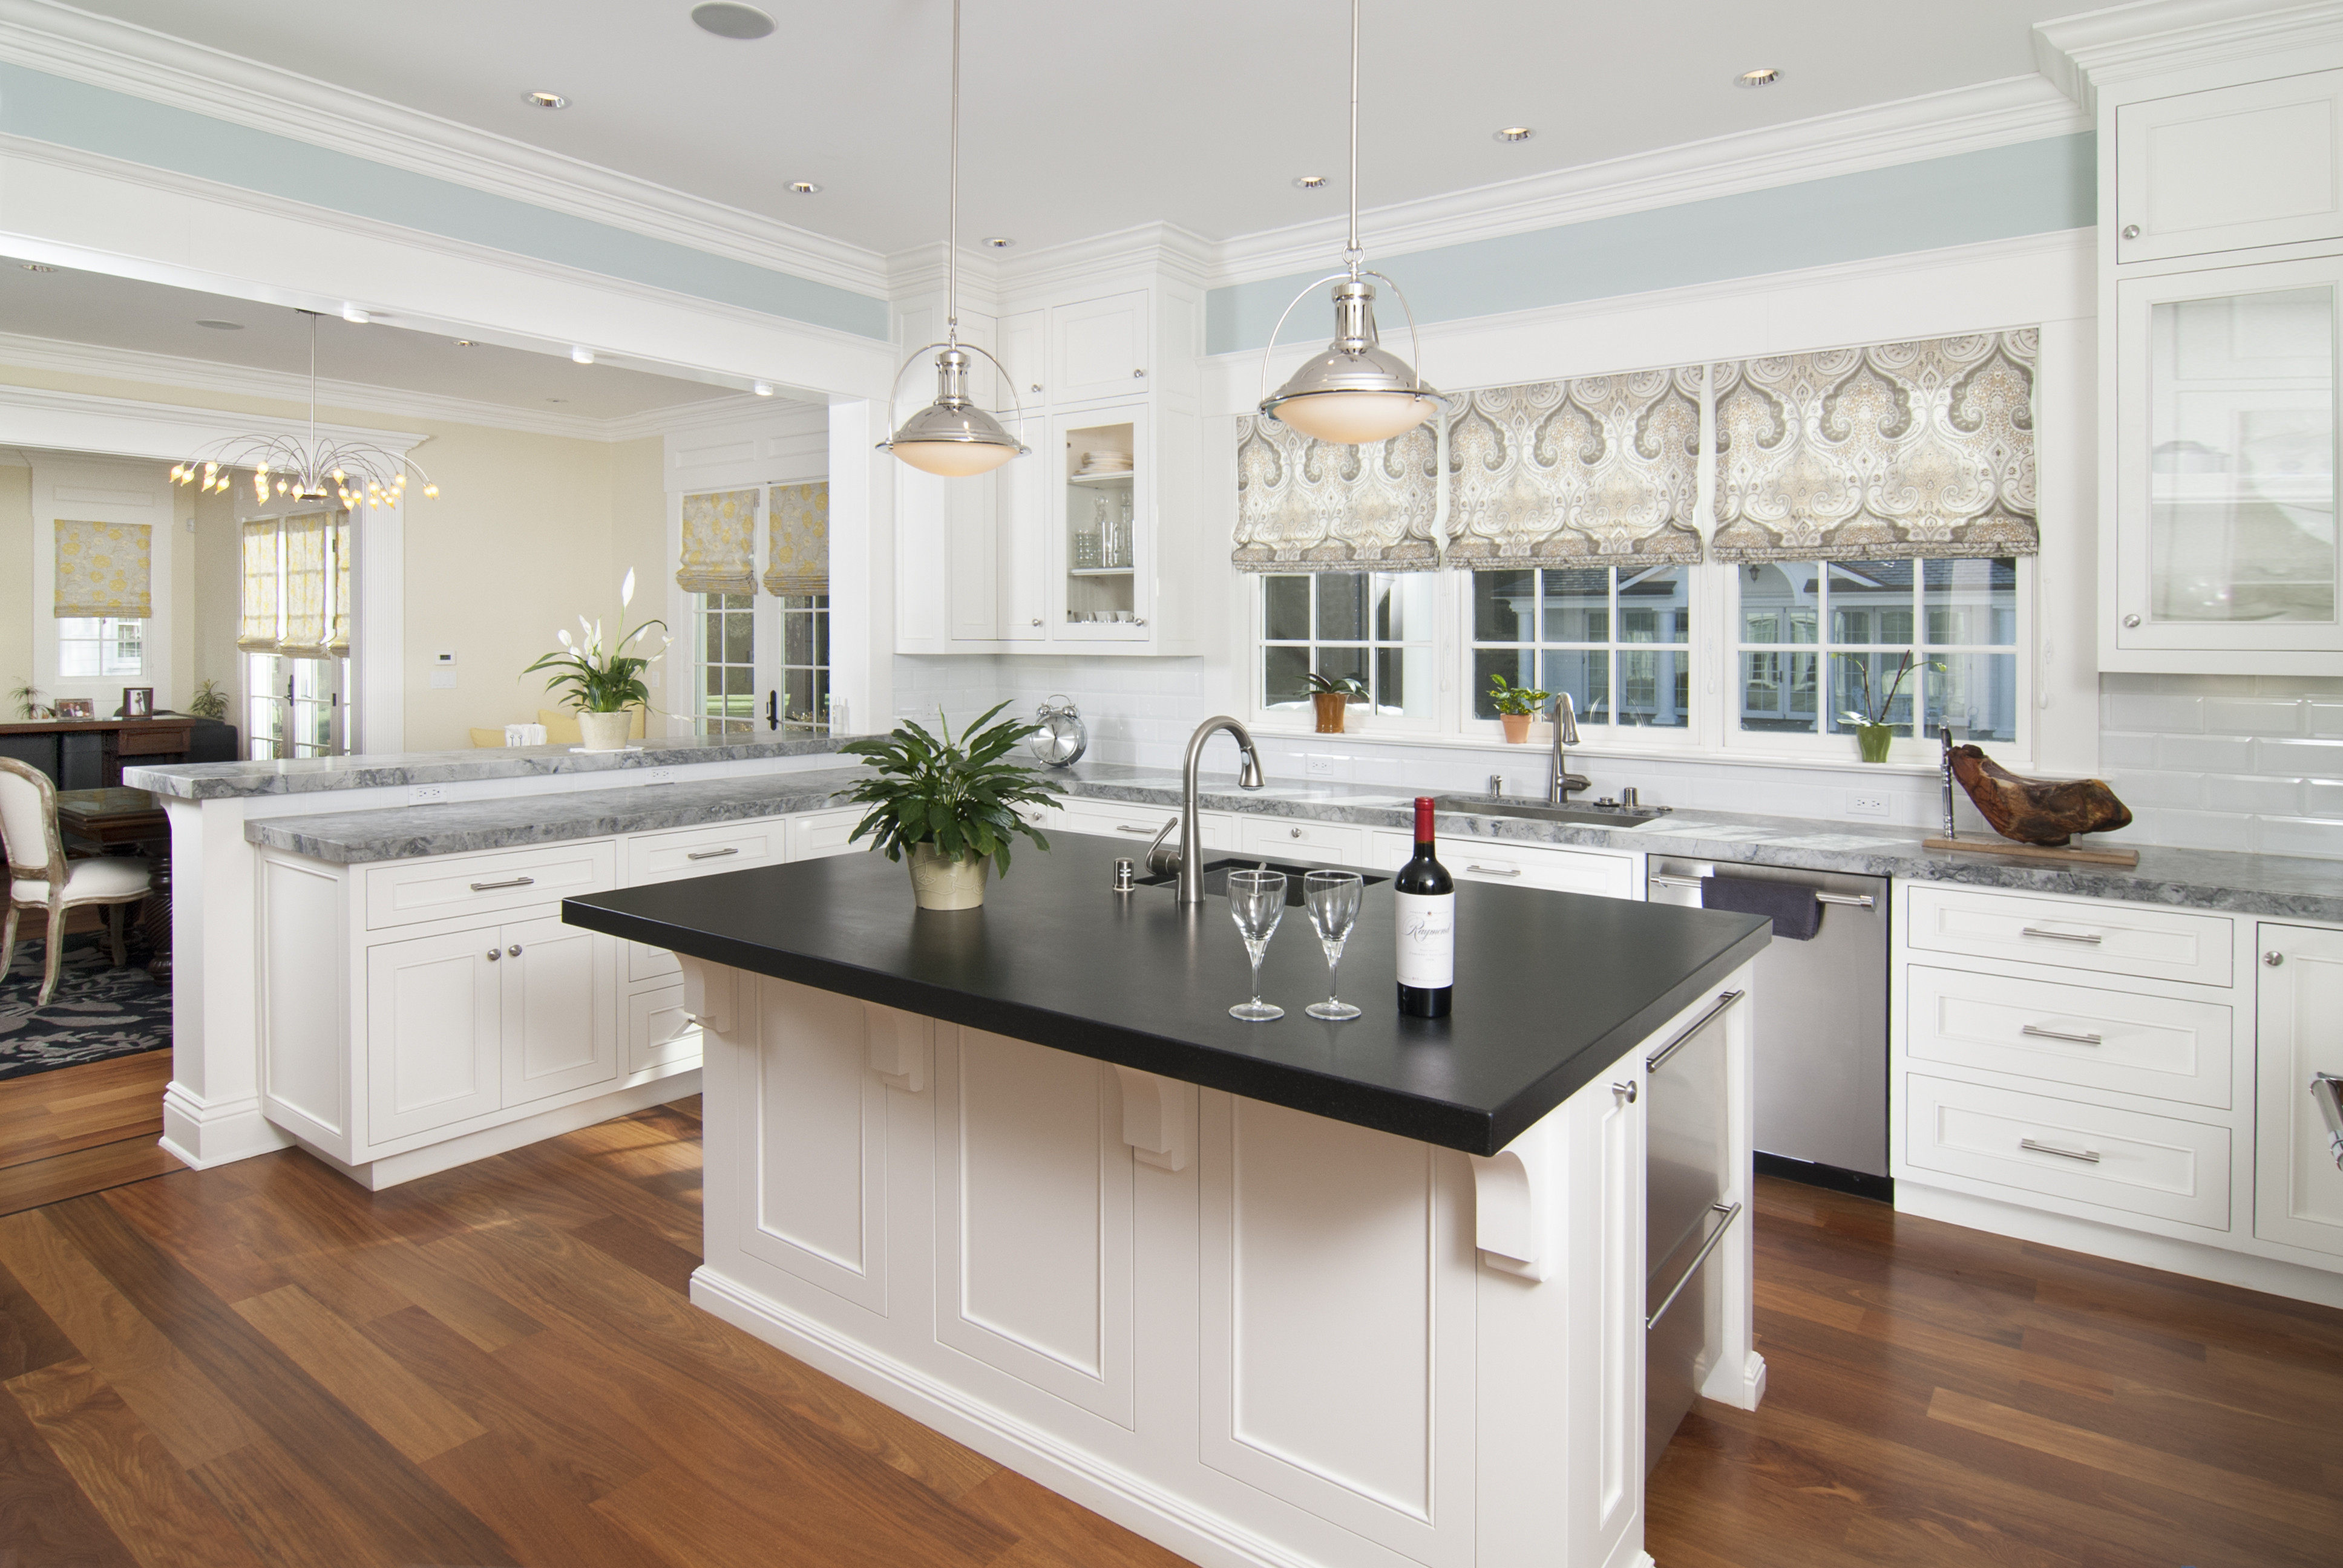 White Transitional Kitchen With A Matching Island, Marble Counter Tops,  Glass Doors, Silver